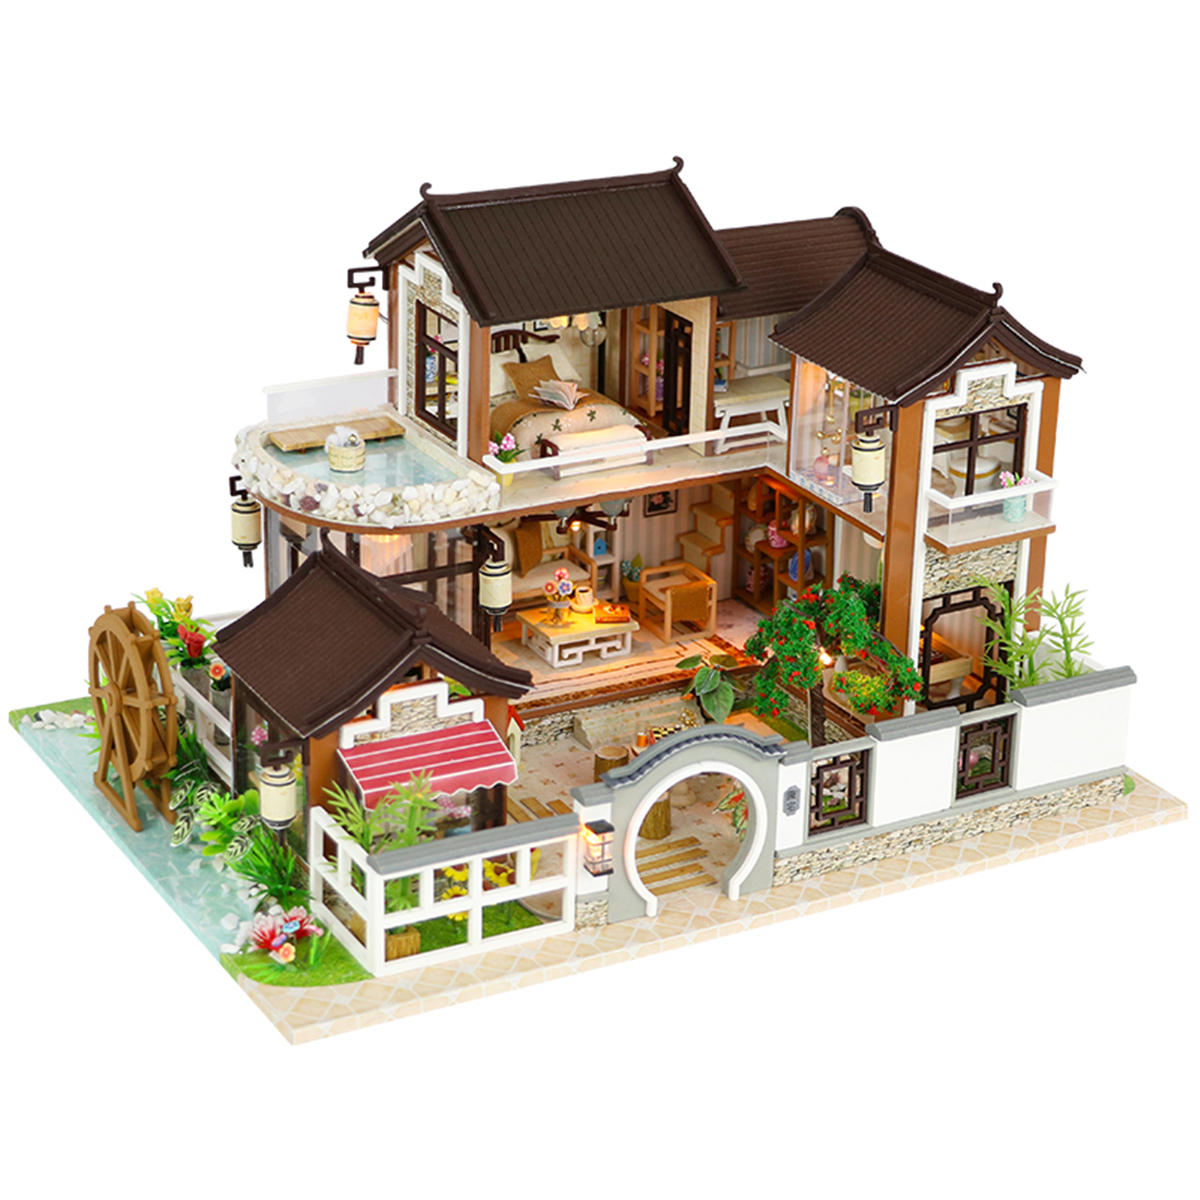 Pleasing Diy Dollhouse Miniature Doll House Furniture Kit Led Kids Cat Wiring Digital Resources Cettecompassionincorg